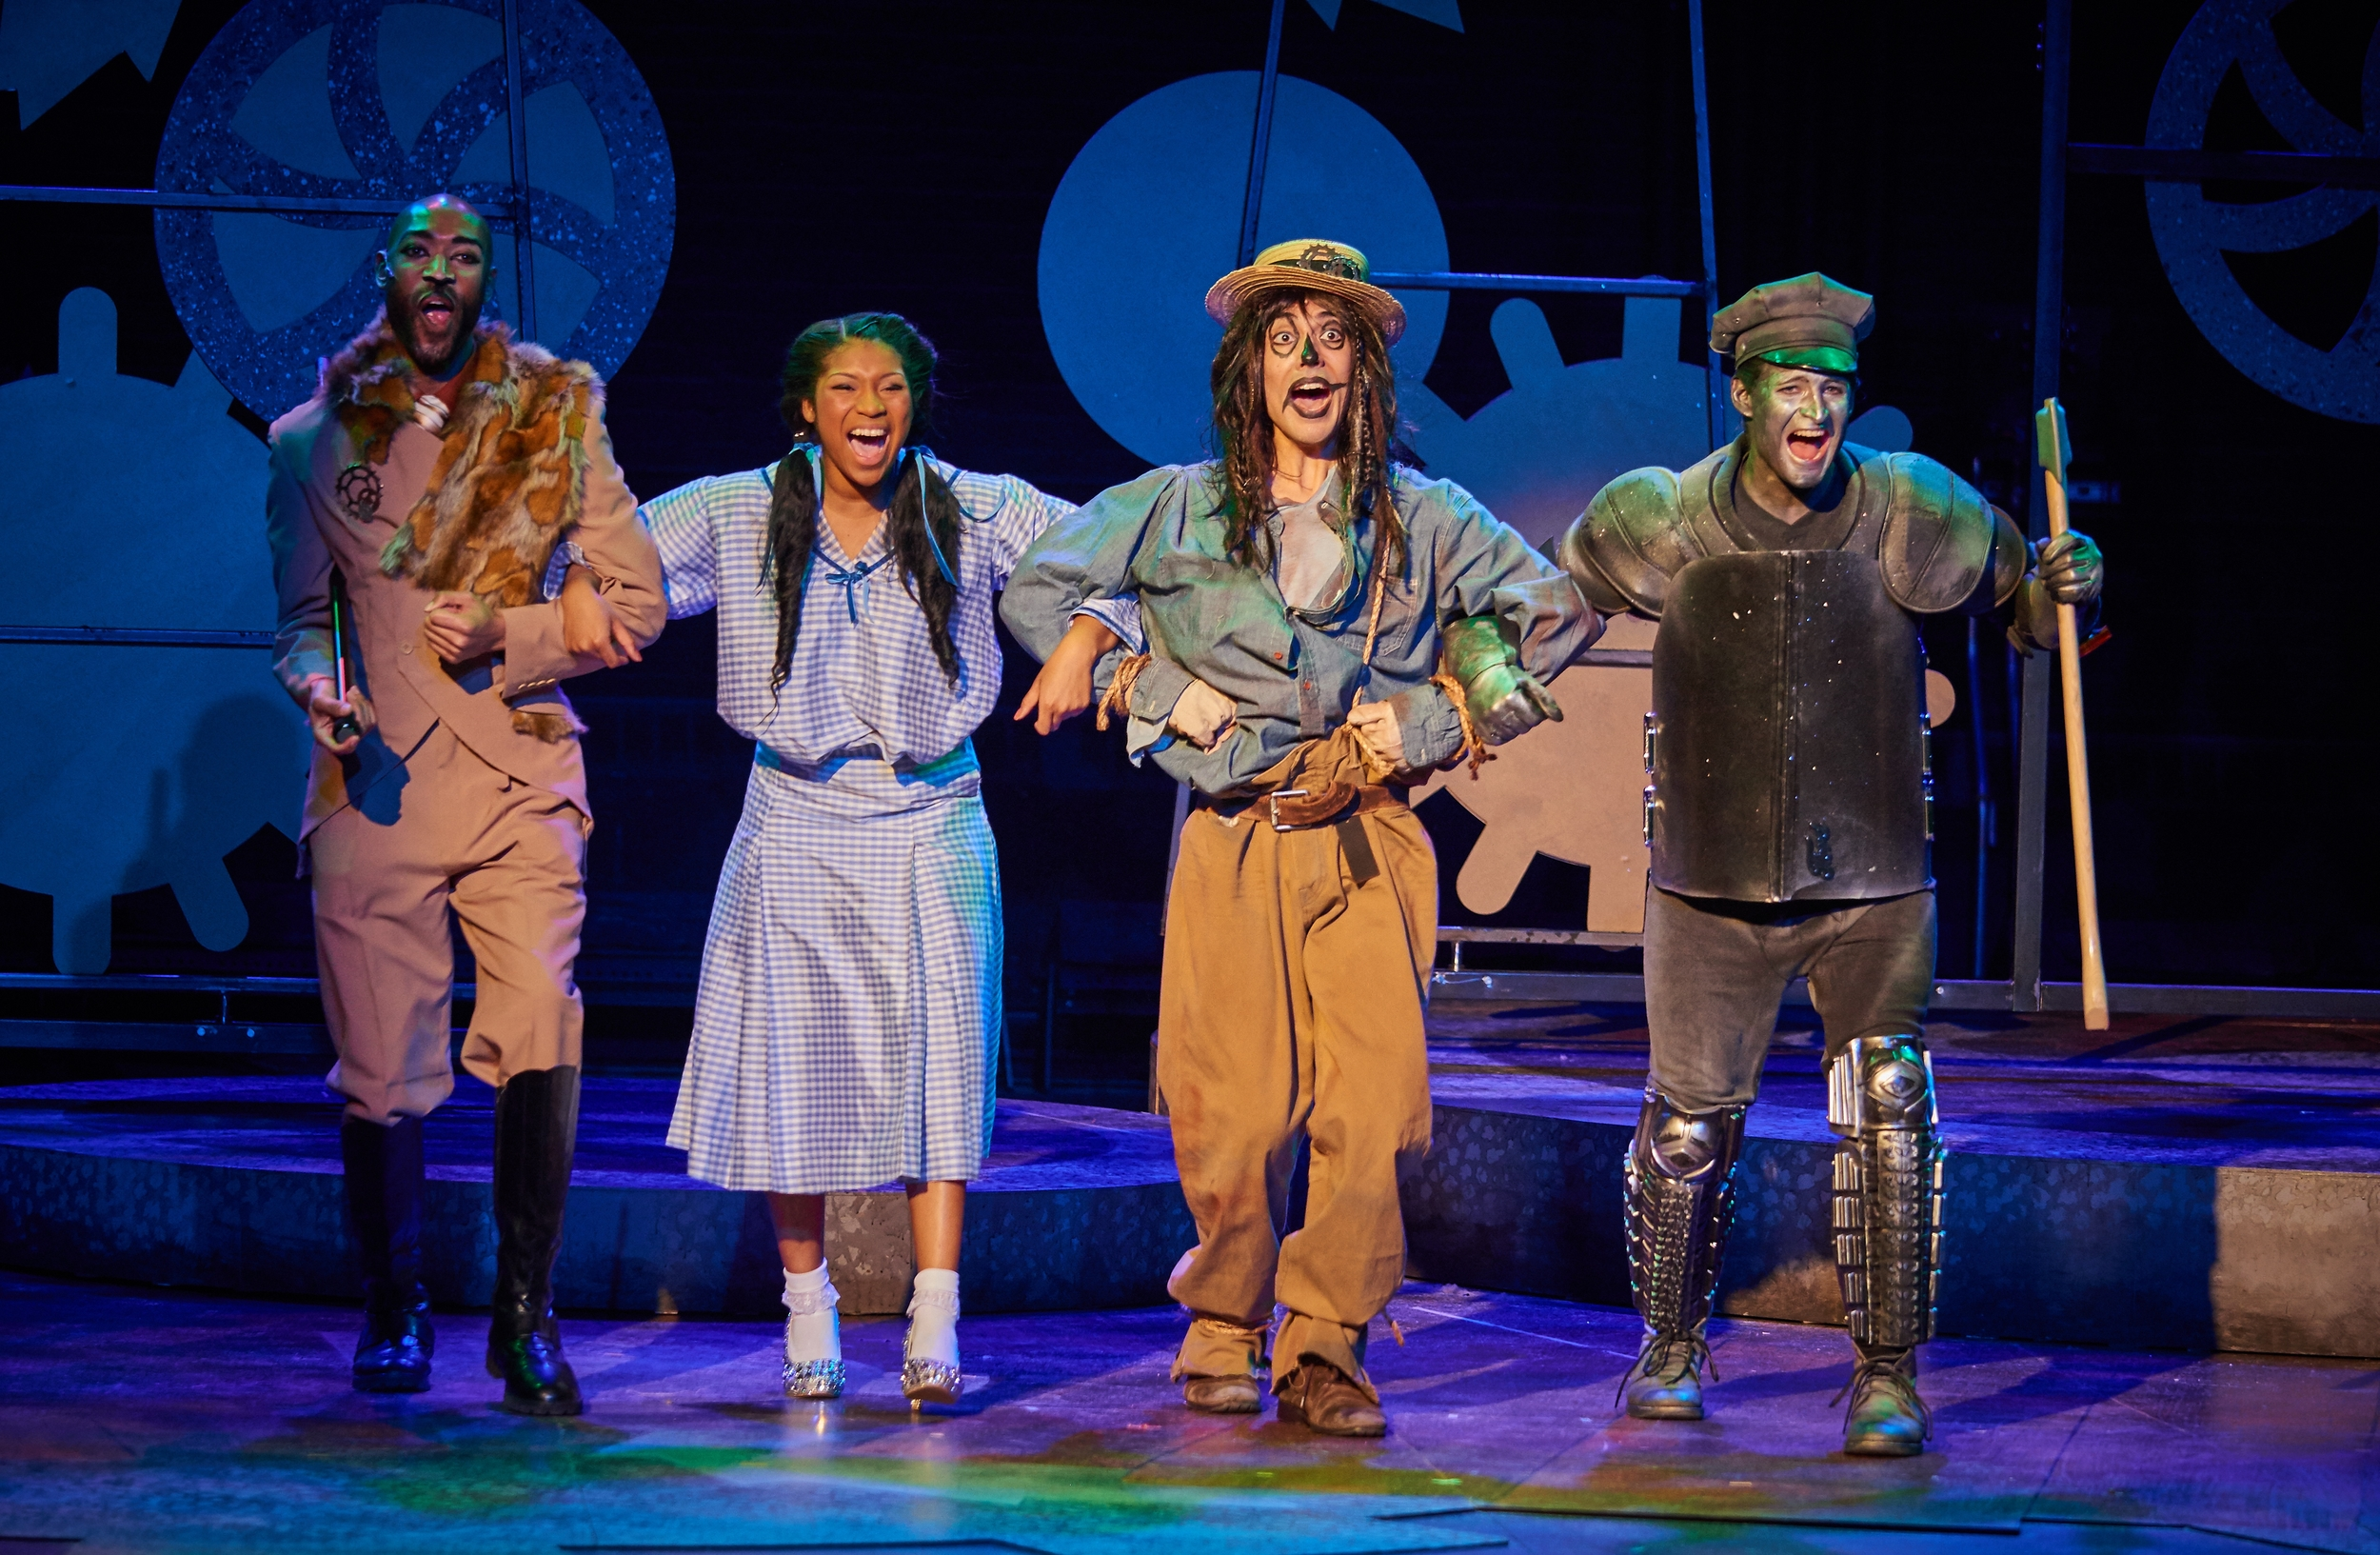 (Left to Right) Damien Norfleet (Lion), Quiana Holmes (Dorothy), Carl-Michael Ogle (Scarecrow), and Justin Raymond Reeves (Tin Man). Photo by Matt McKee.